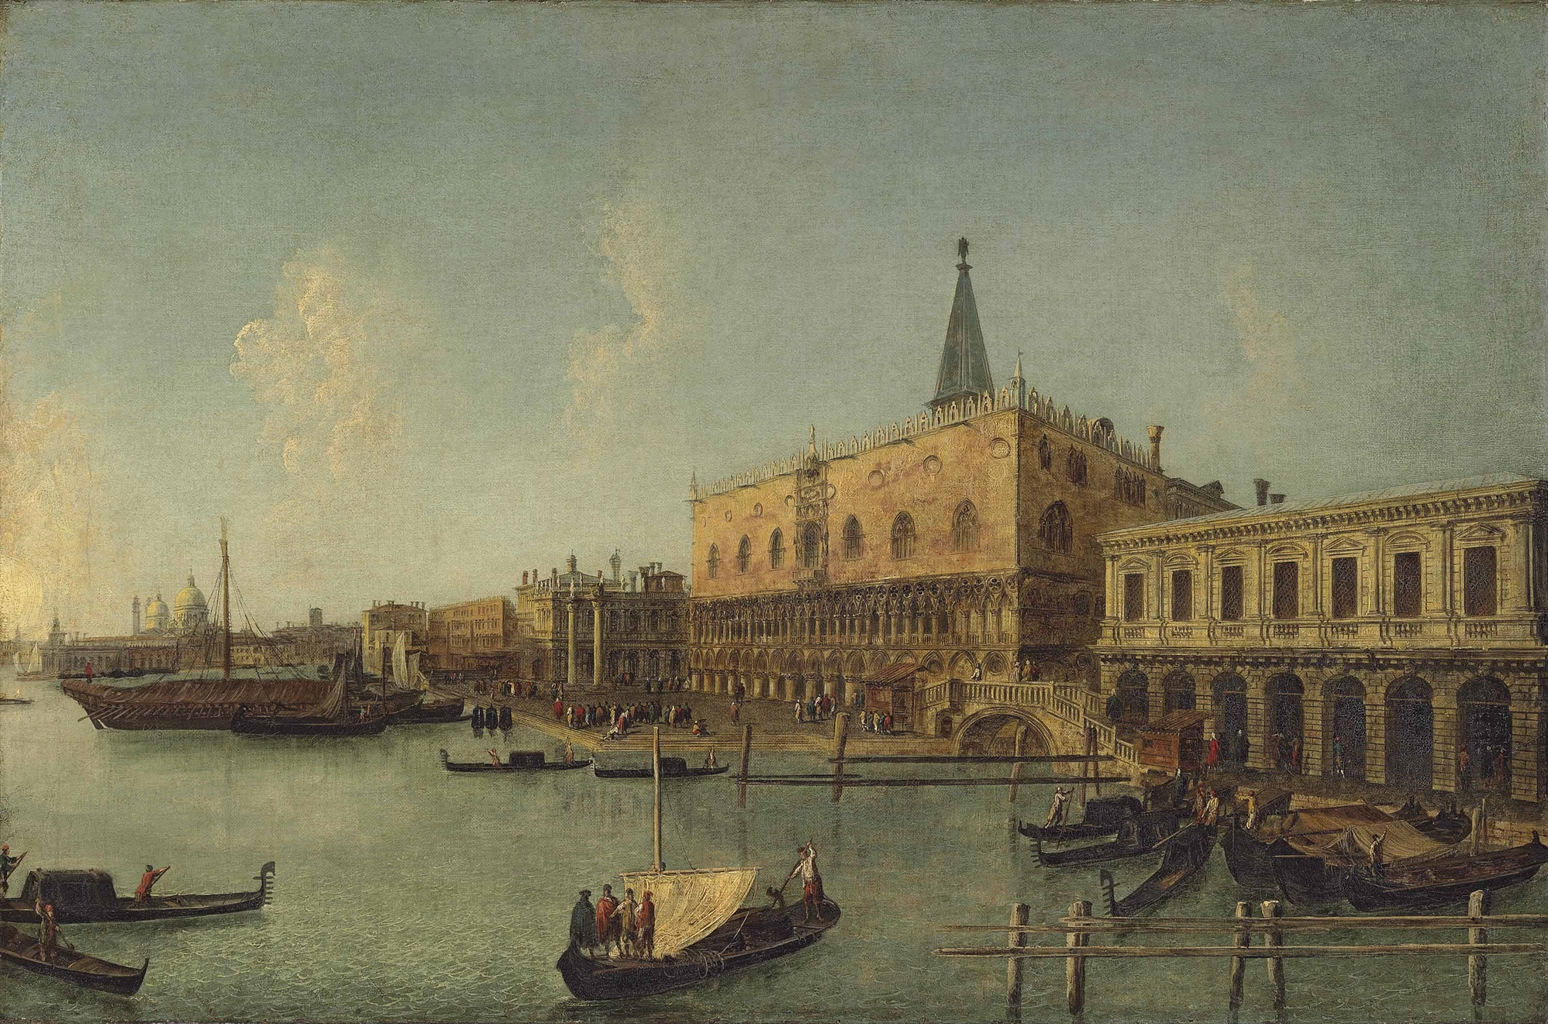 The Bacino di San Marco, Venice, with the Doge's Palace